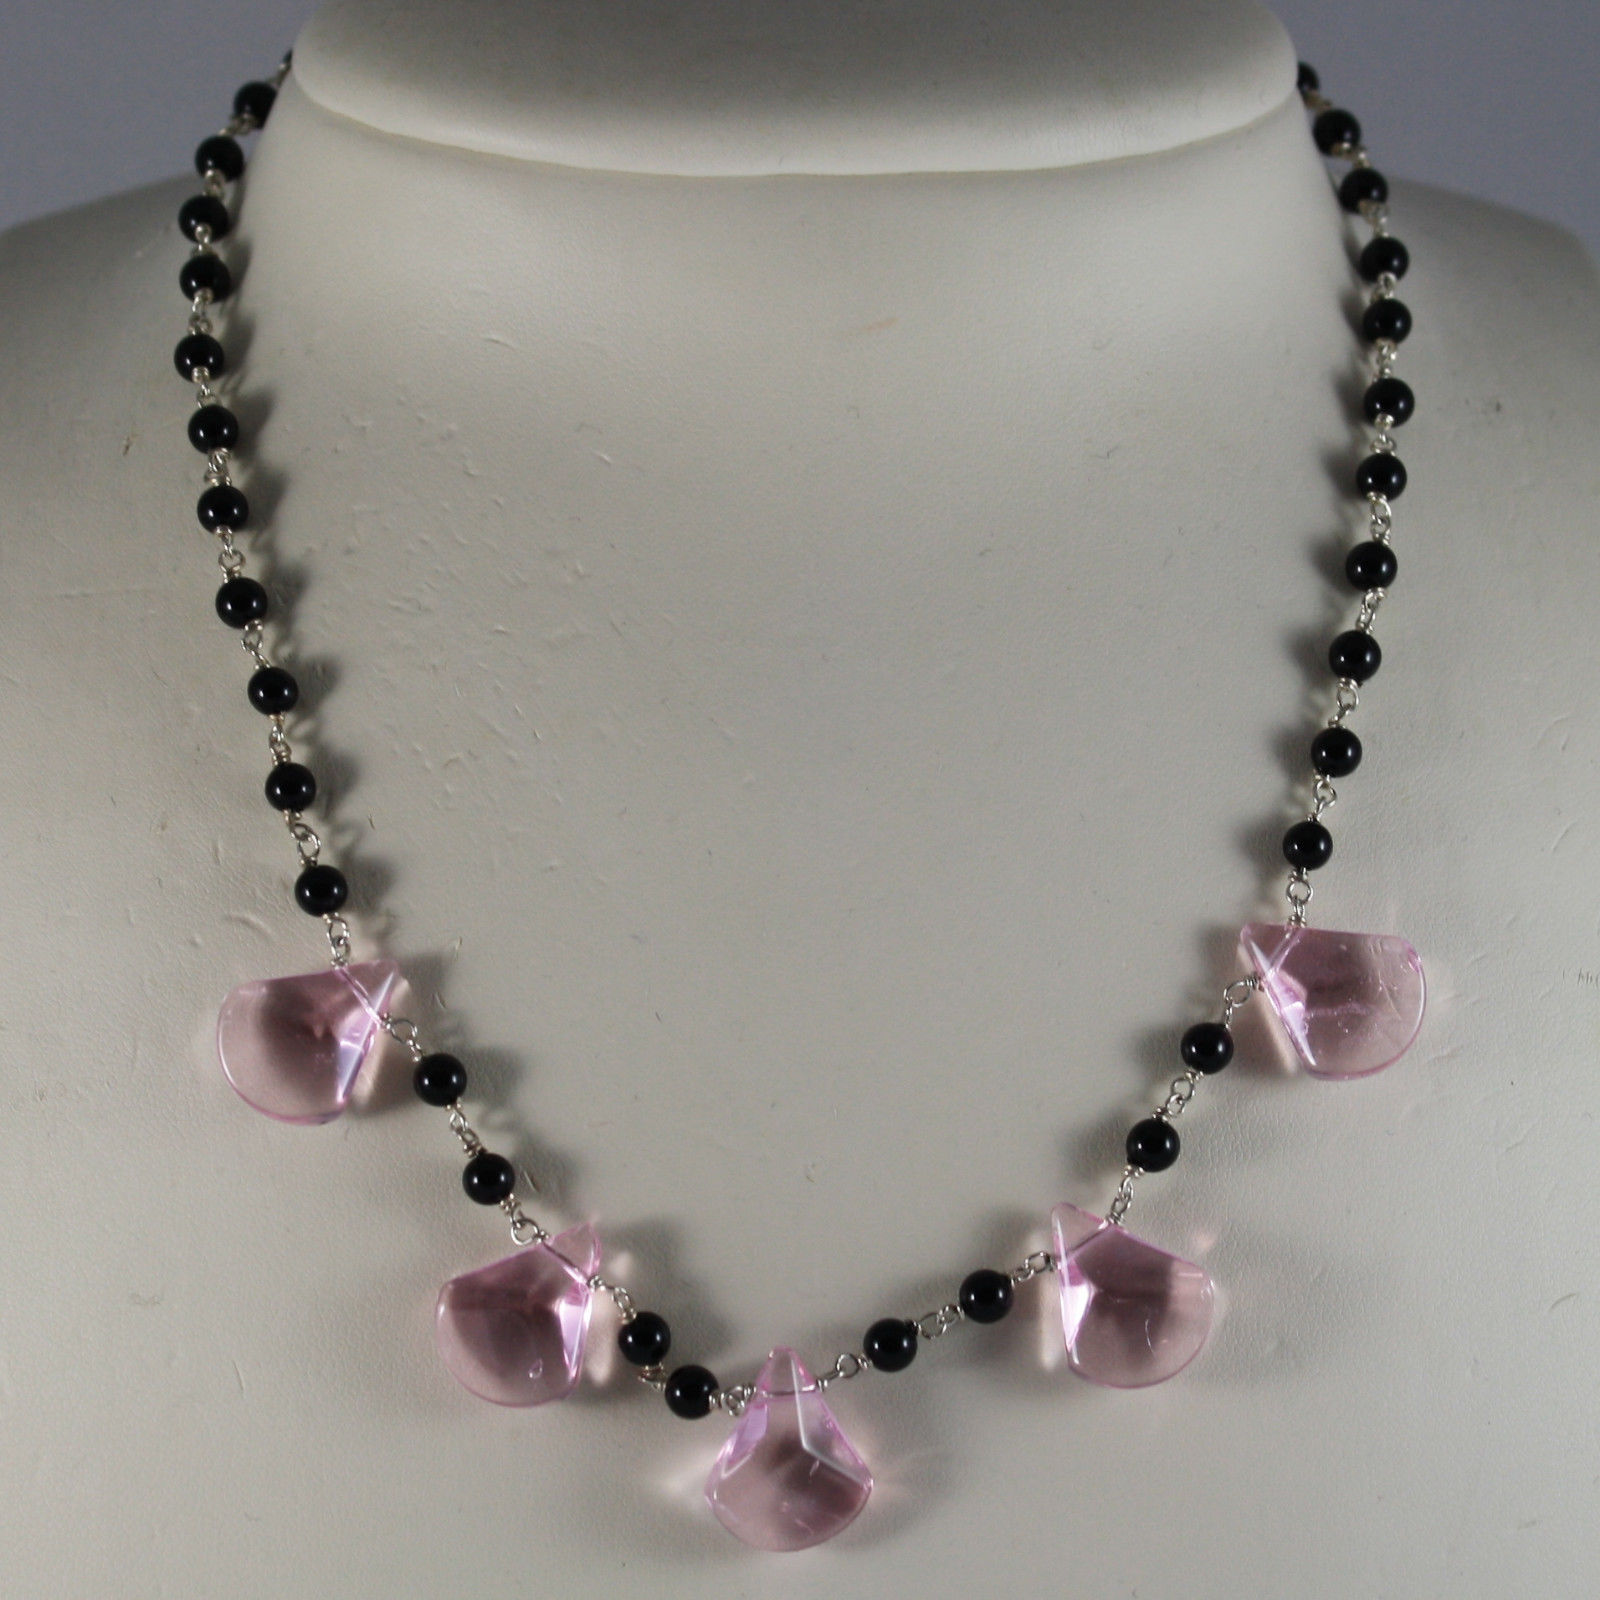 .925 SILVER RHODIUM NECKLACE WITH BLACK ONYX AND DROPS OF PINK CRISTAL